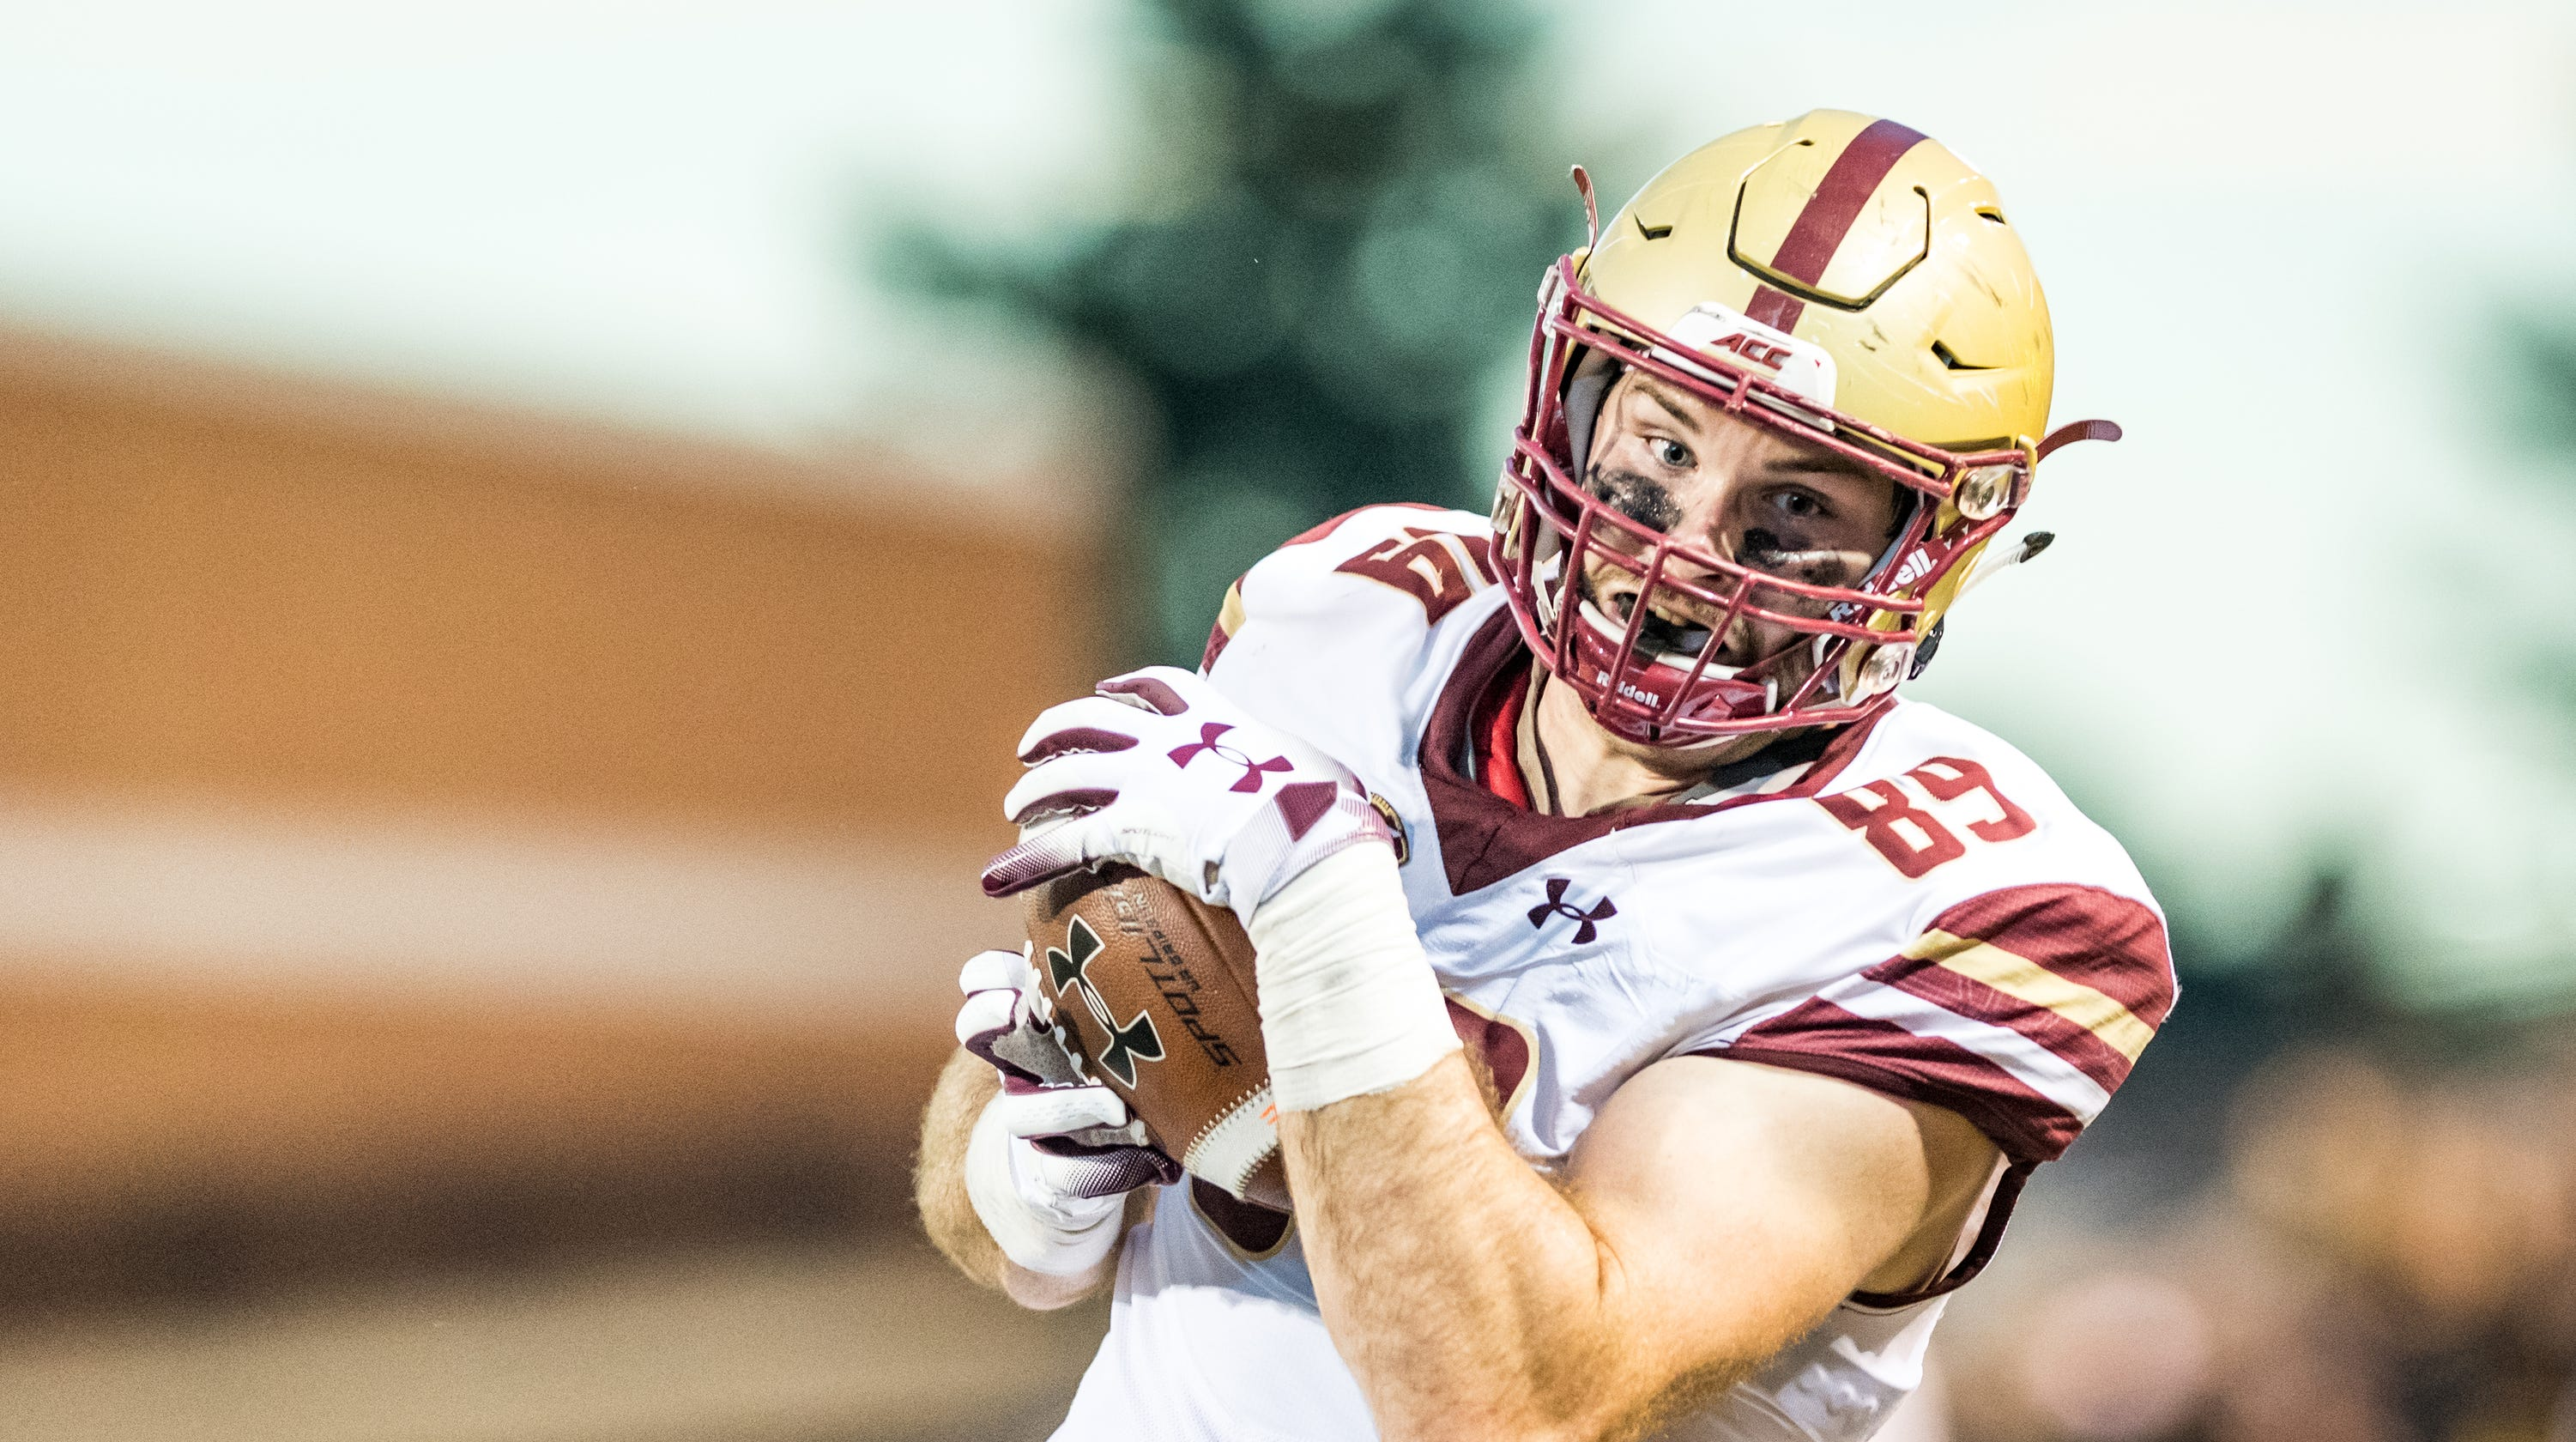 finest selection 5b489 1c912 Tommy Sweeney, of Don Bosco NJ, leading for Boston College ...